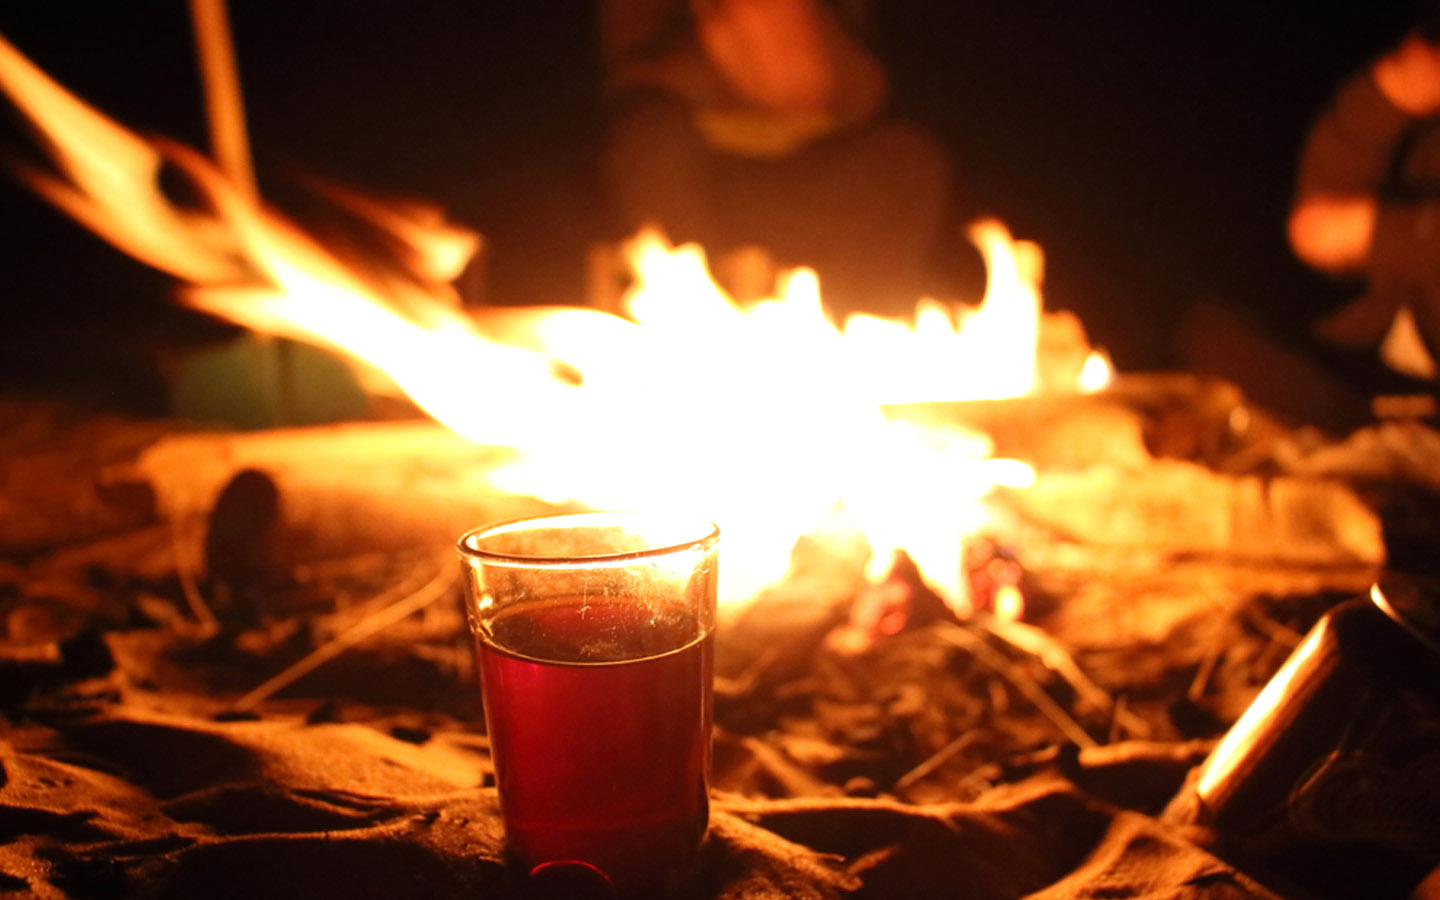 making and using firewood during camping